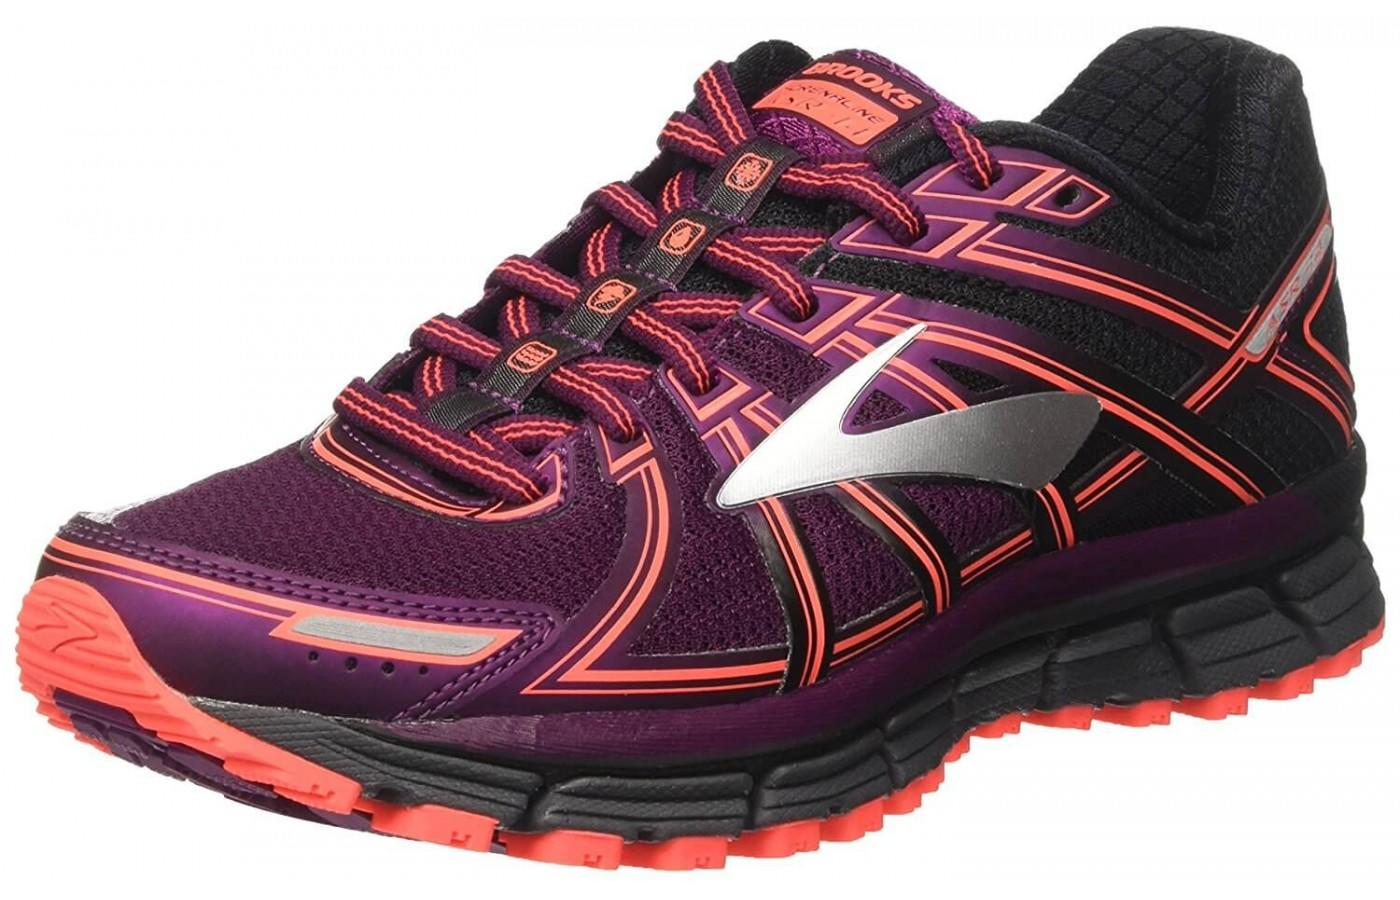 Brooks has released the 14th version of the Adrenaline ASR